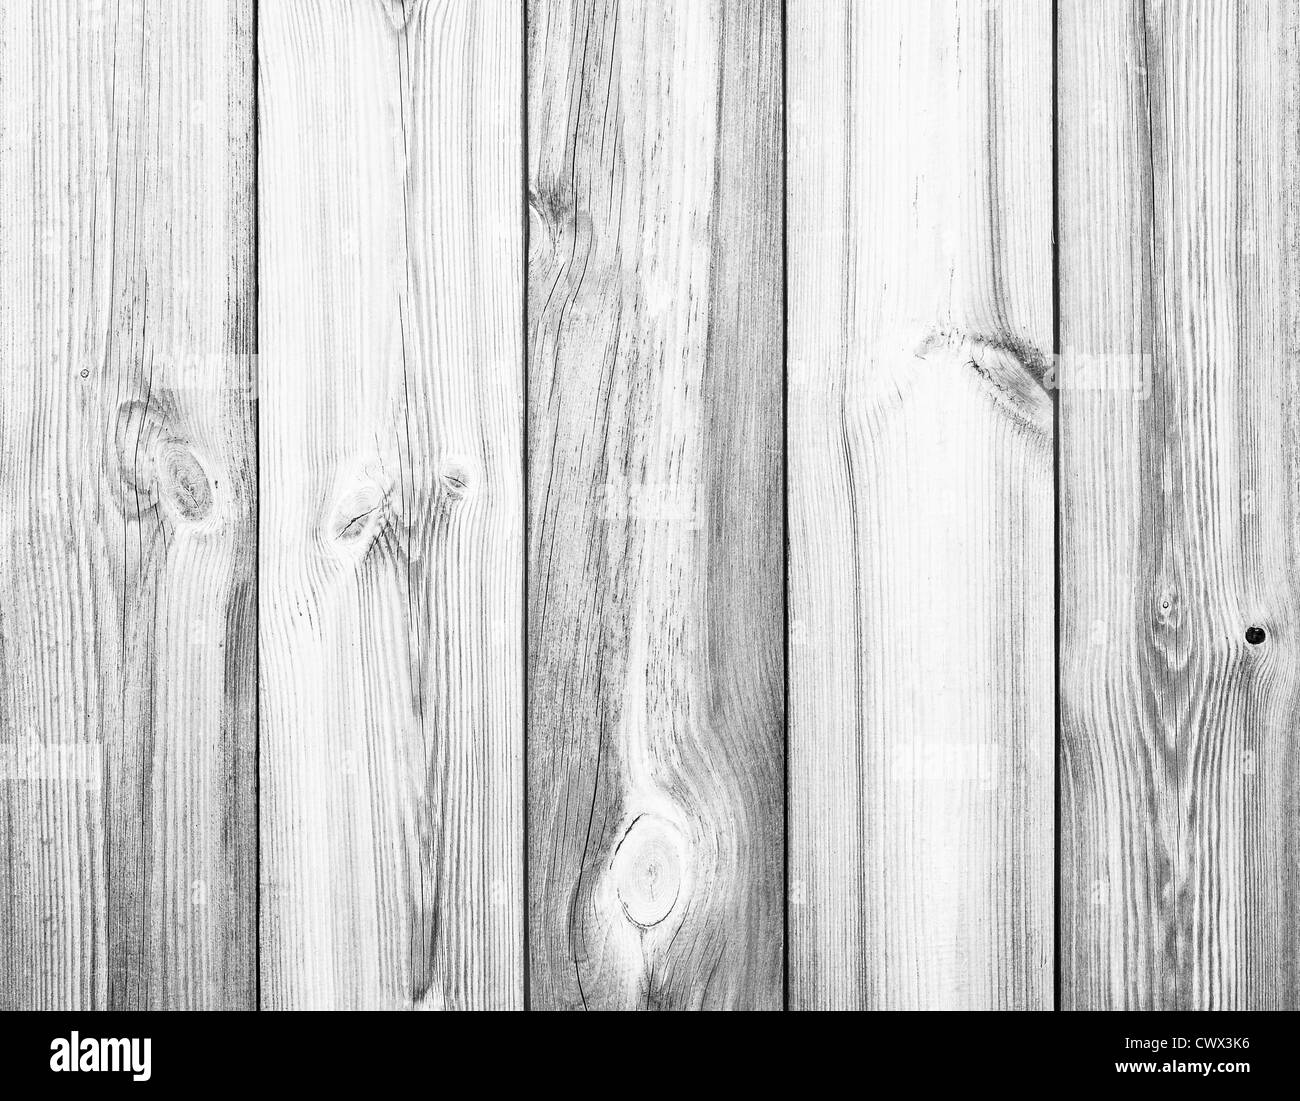 White Wood Planks as Background or Texture, Natural Pattern - Stock Image